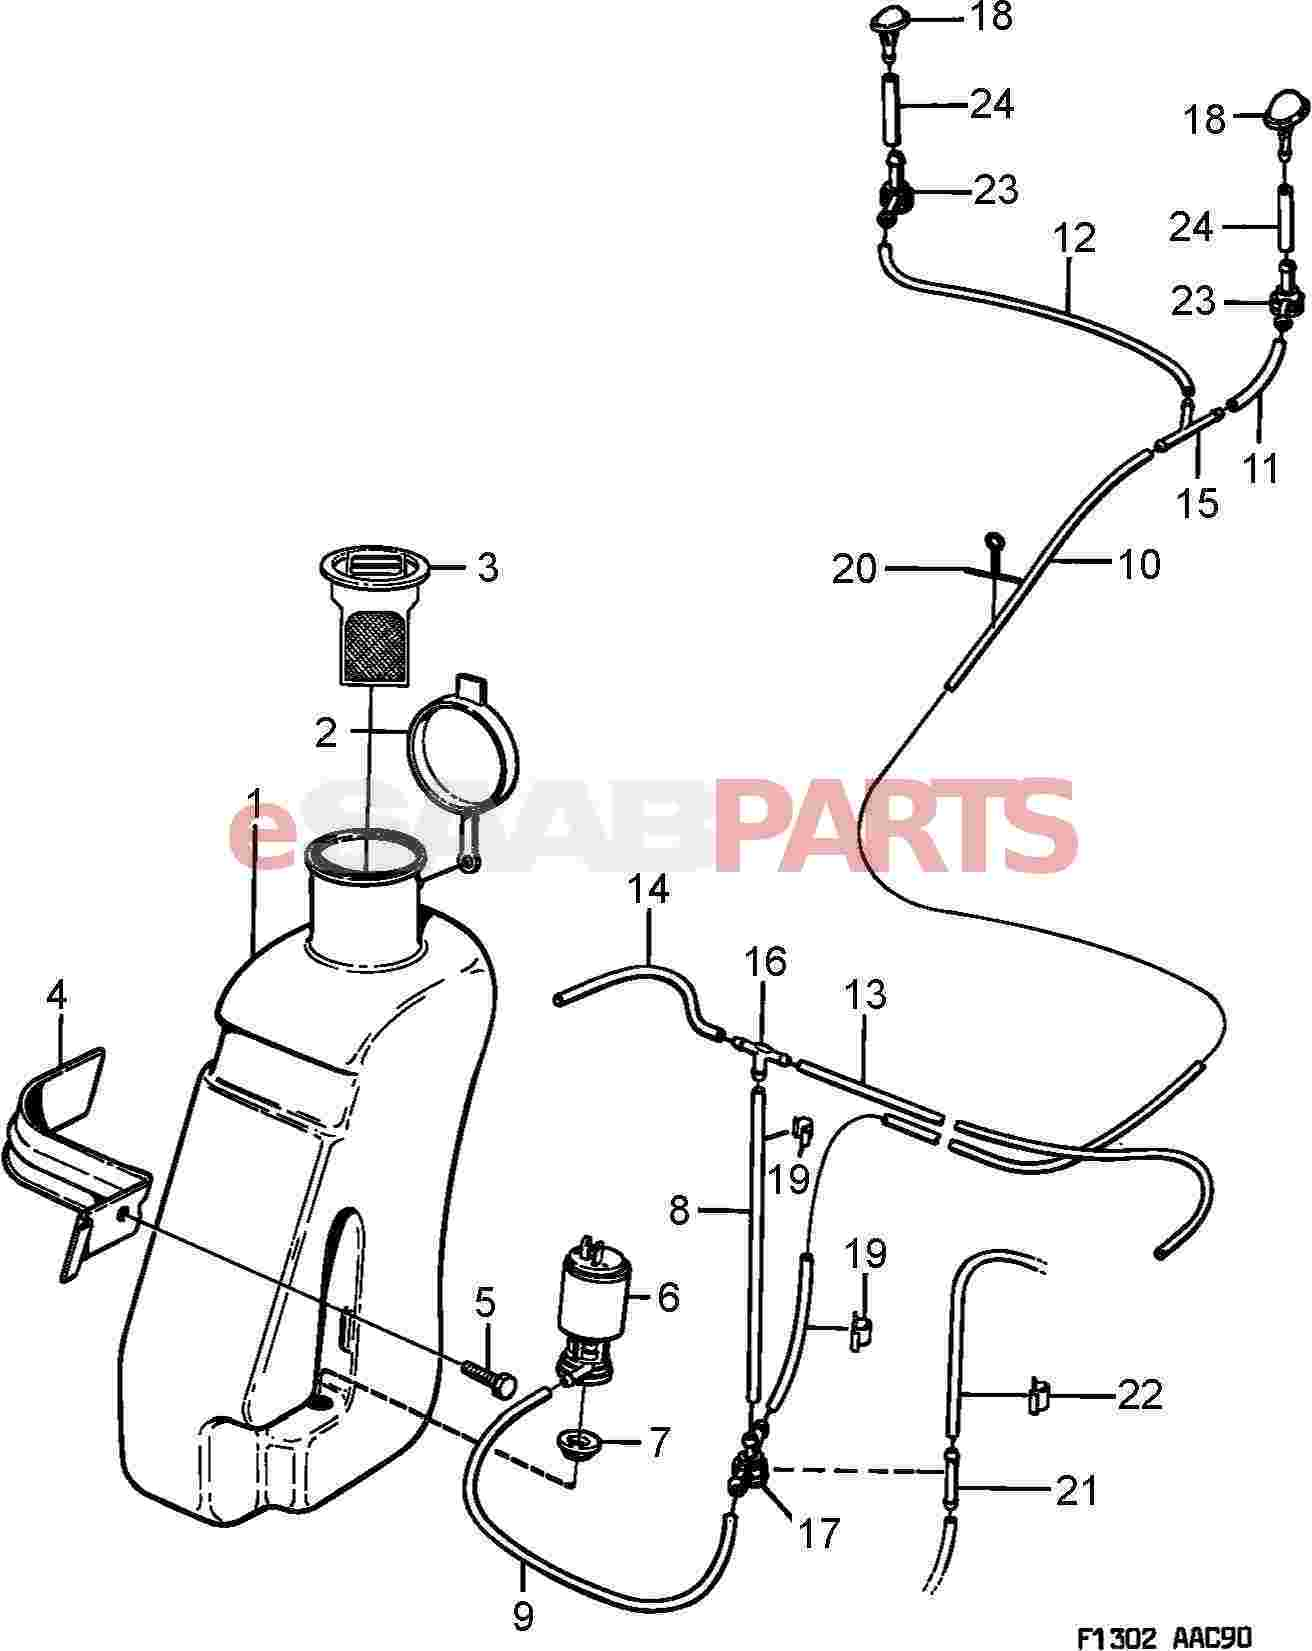 Saab 900 Electrical Parts Wipers Related Wiring Diagram For 1990 Washer Unit